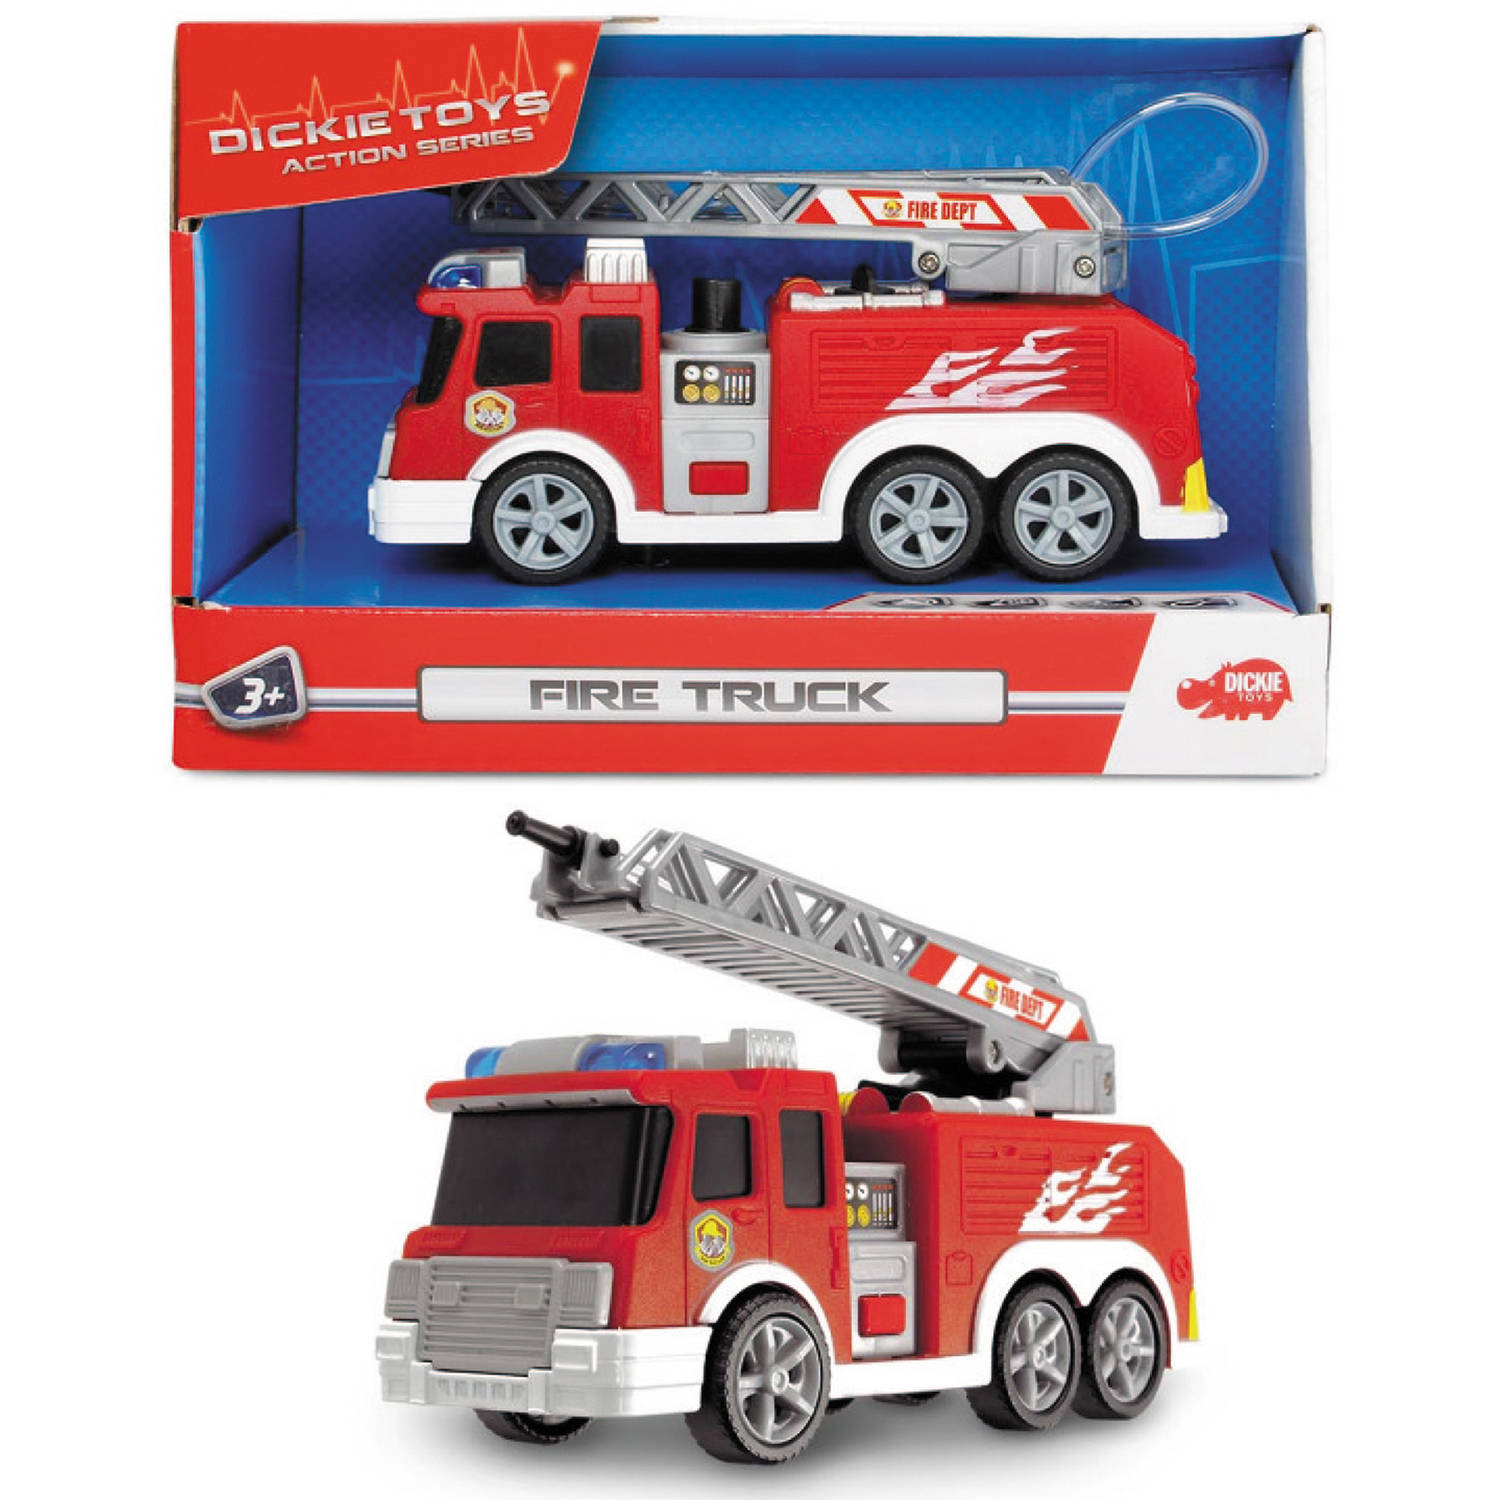 Dickie Toys Mini Action Fire Truck Vehicle Walmart